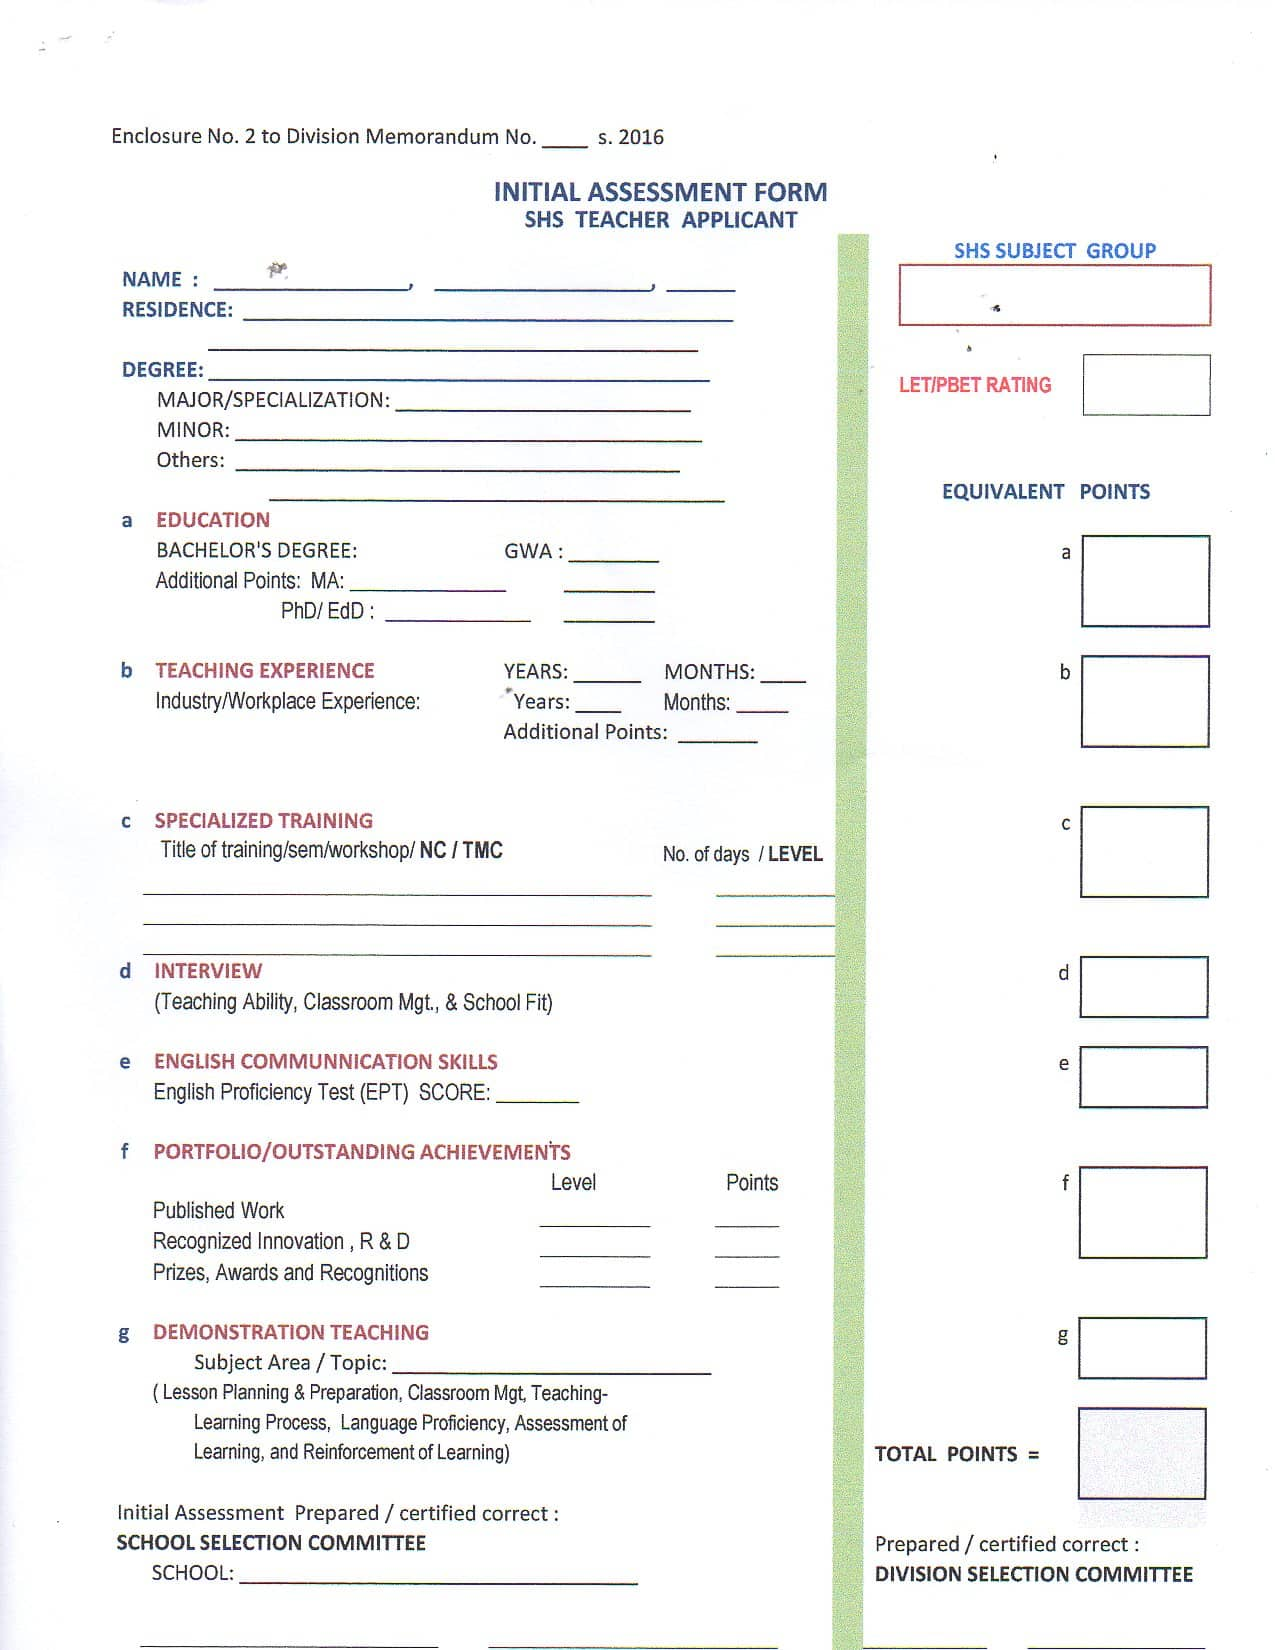 Initial Assessment Form SHS Teacher Applicant